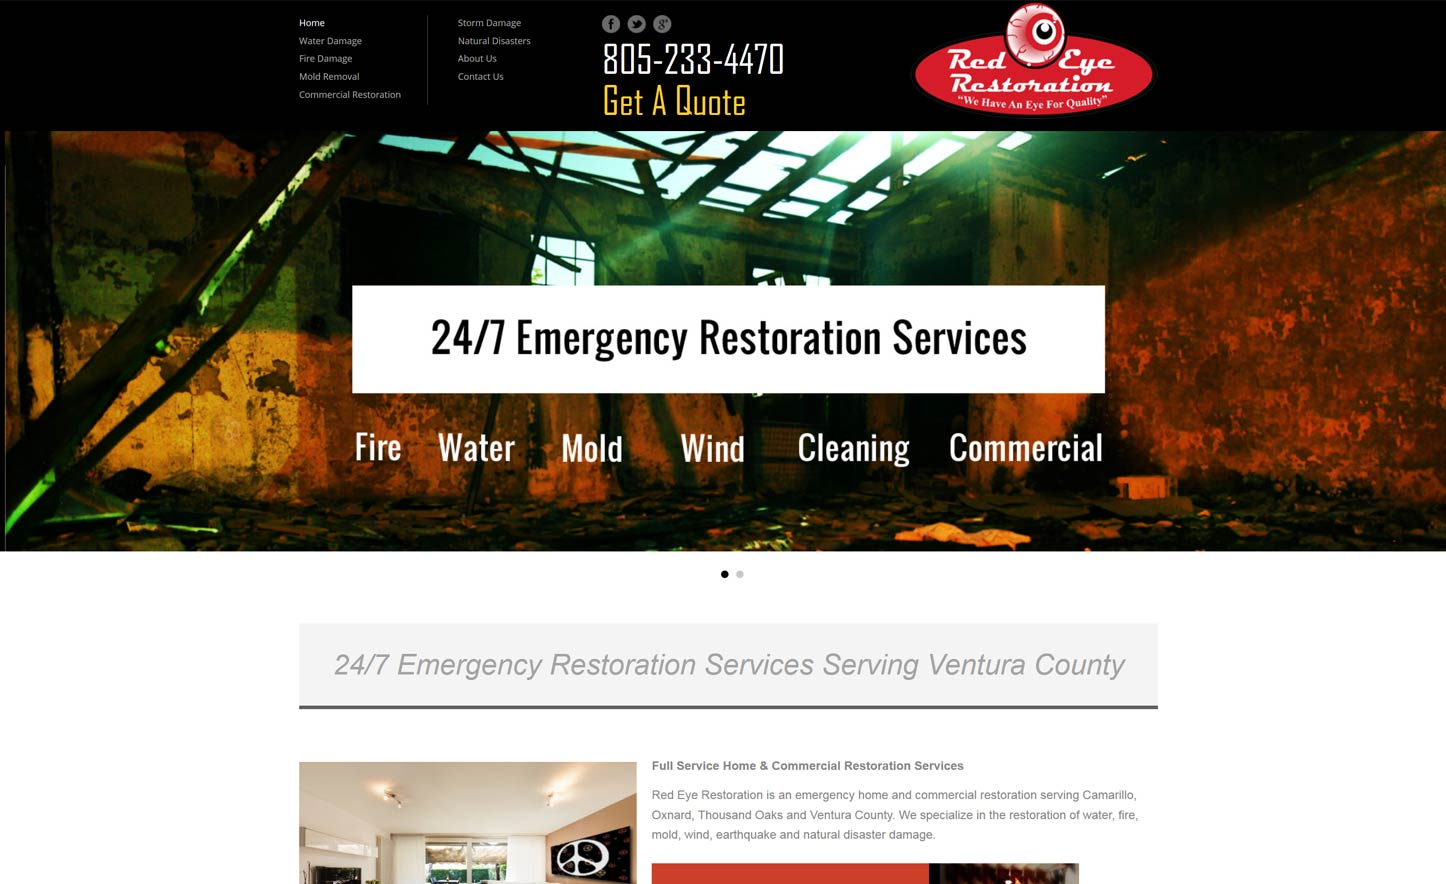 Web Design for Cleaning & Sanitation Companies - The Ventura Pixel